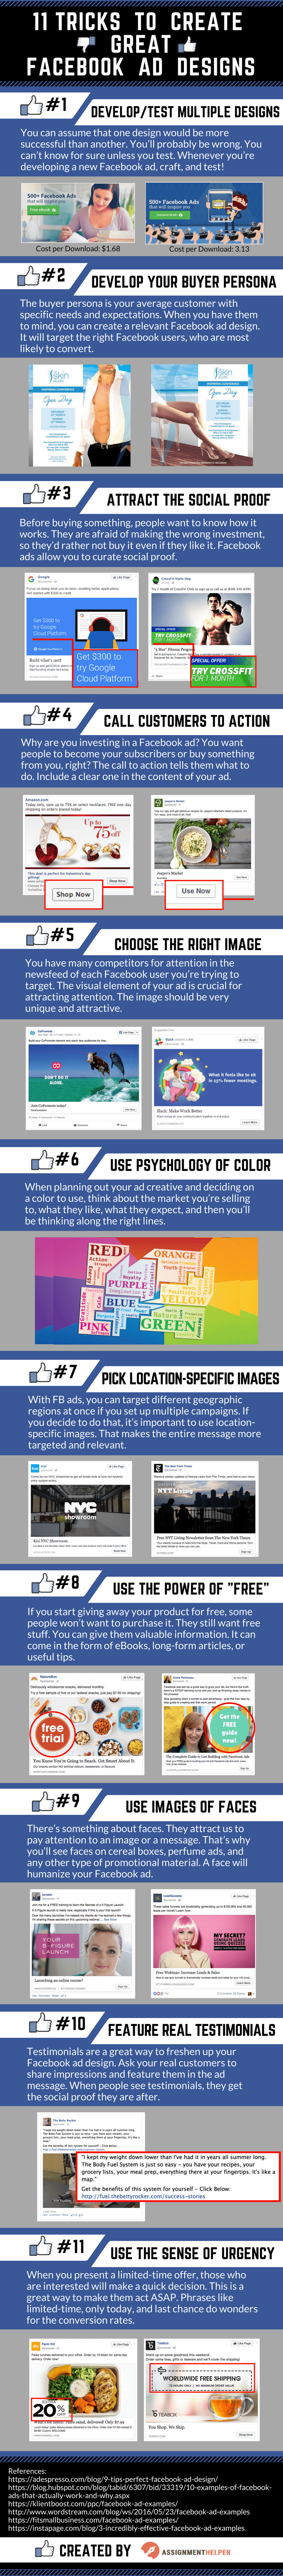 11 TRICKS TO CREATE GREAT FACEBOOK AD DESIGNS